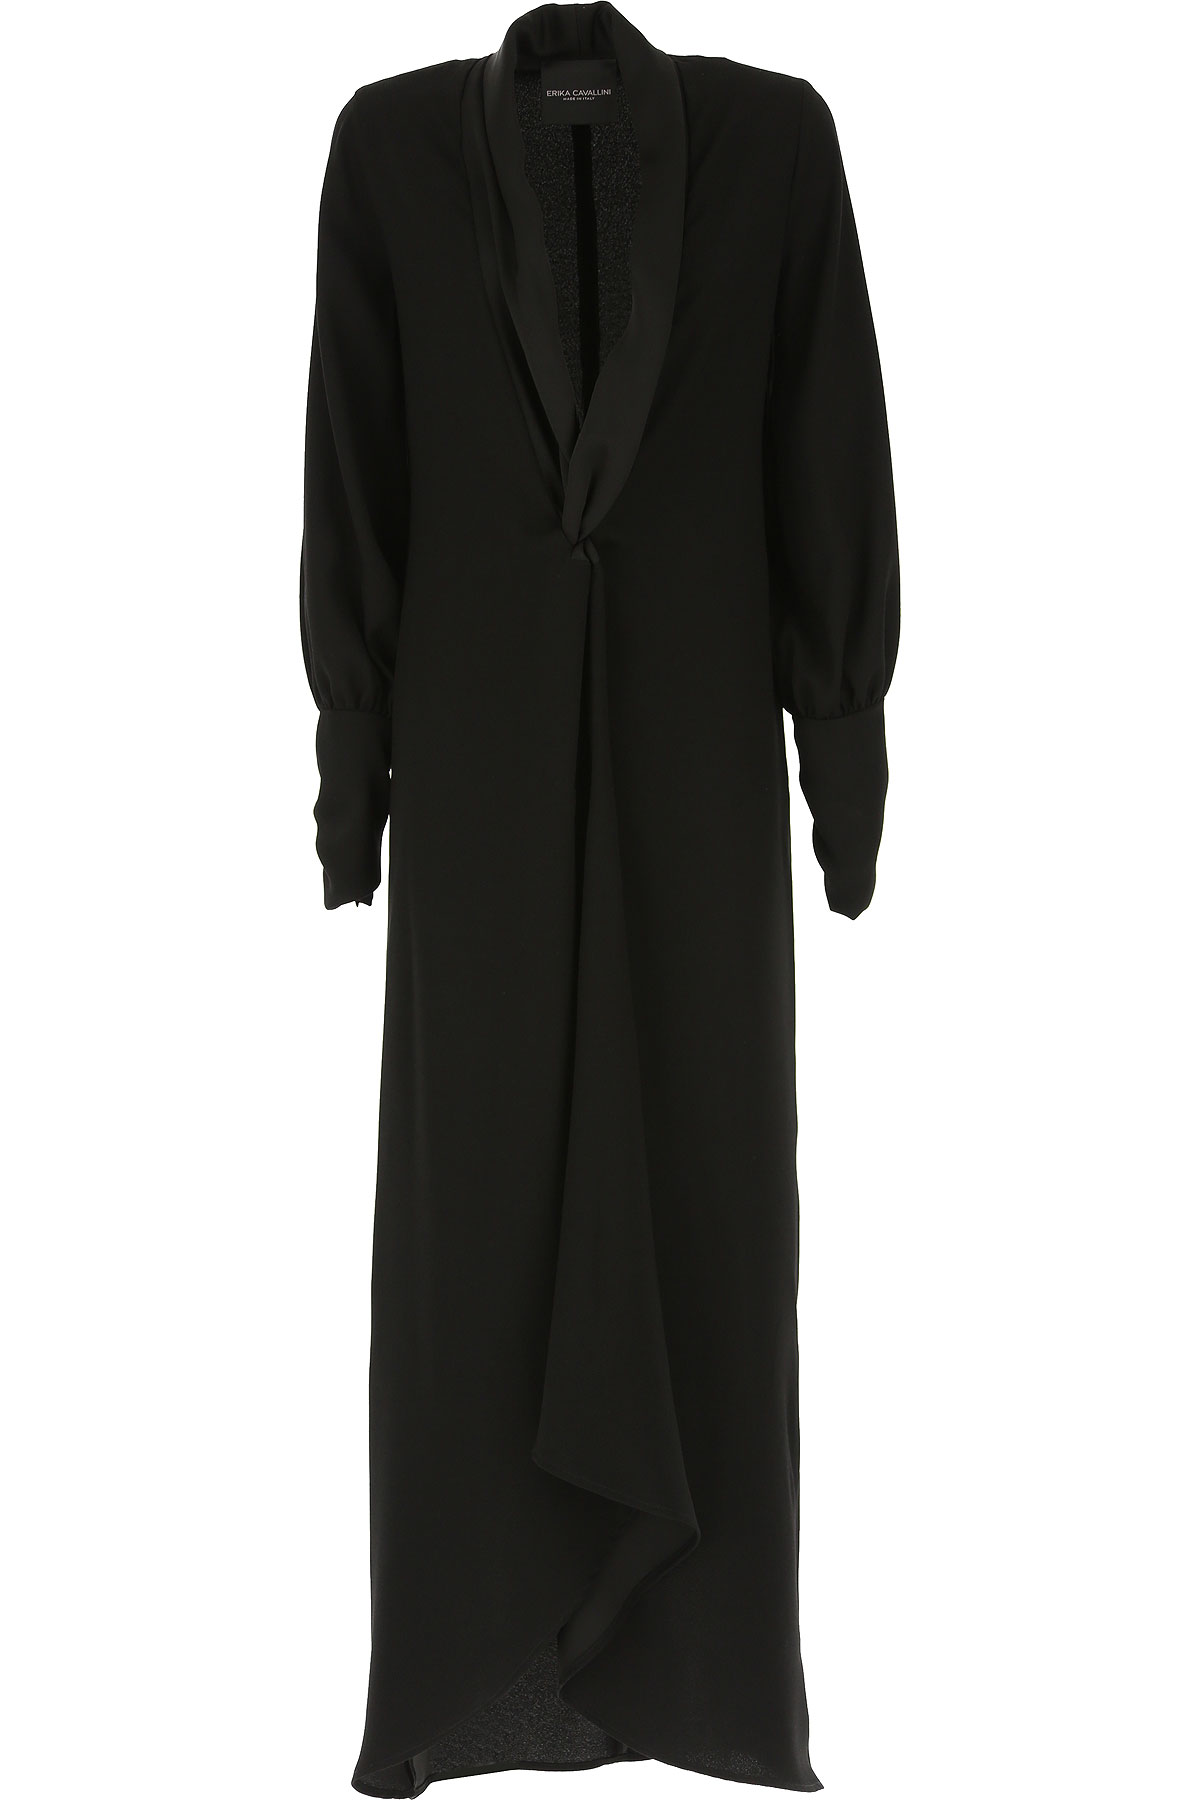 Erika Cavallini Dress for Women, Evening Cocktail Party On Sale, Black, polyestere, 2019, 4 6